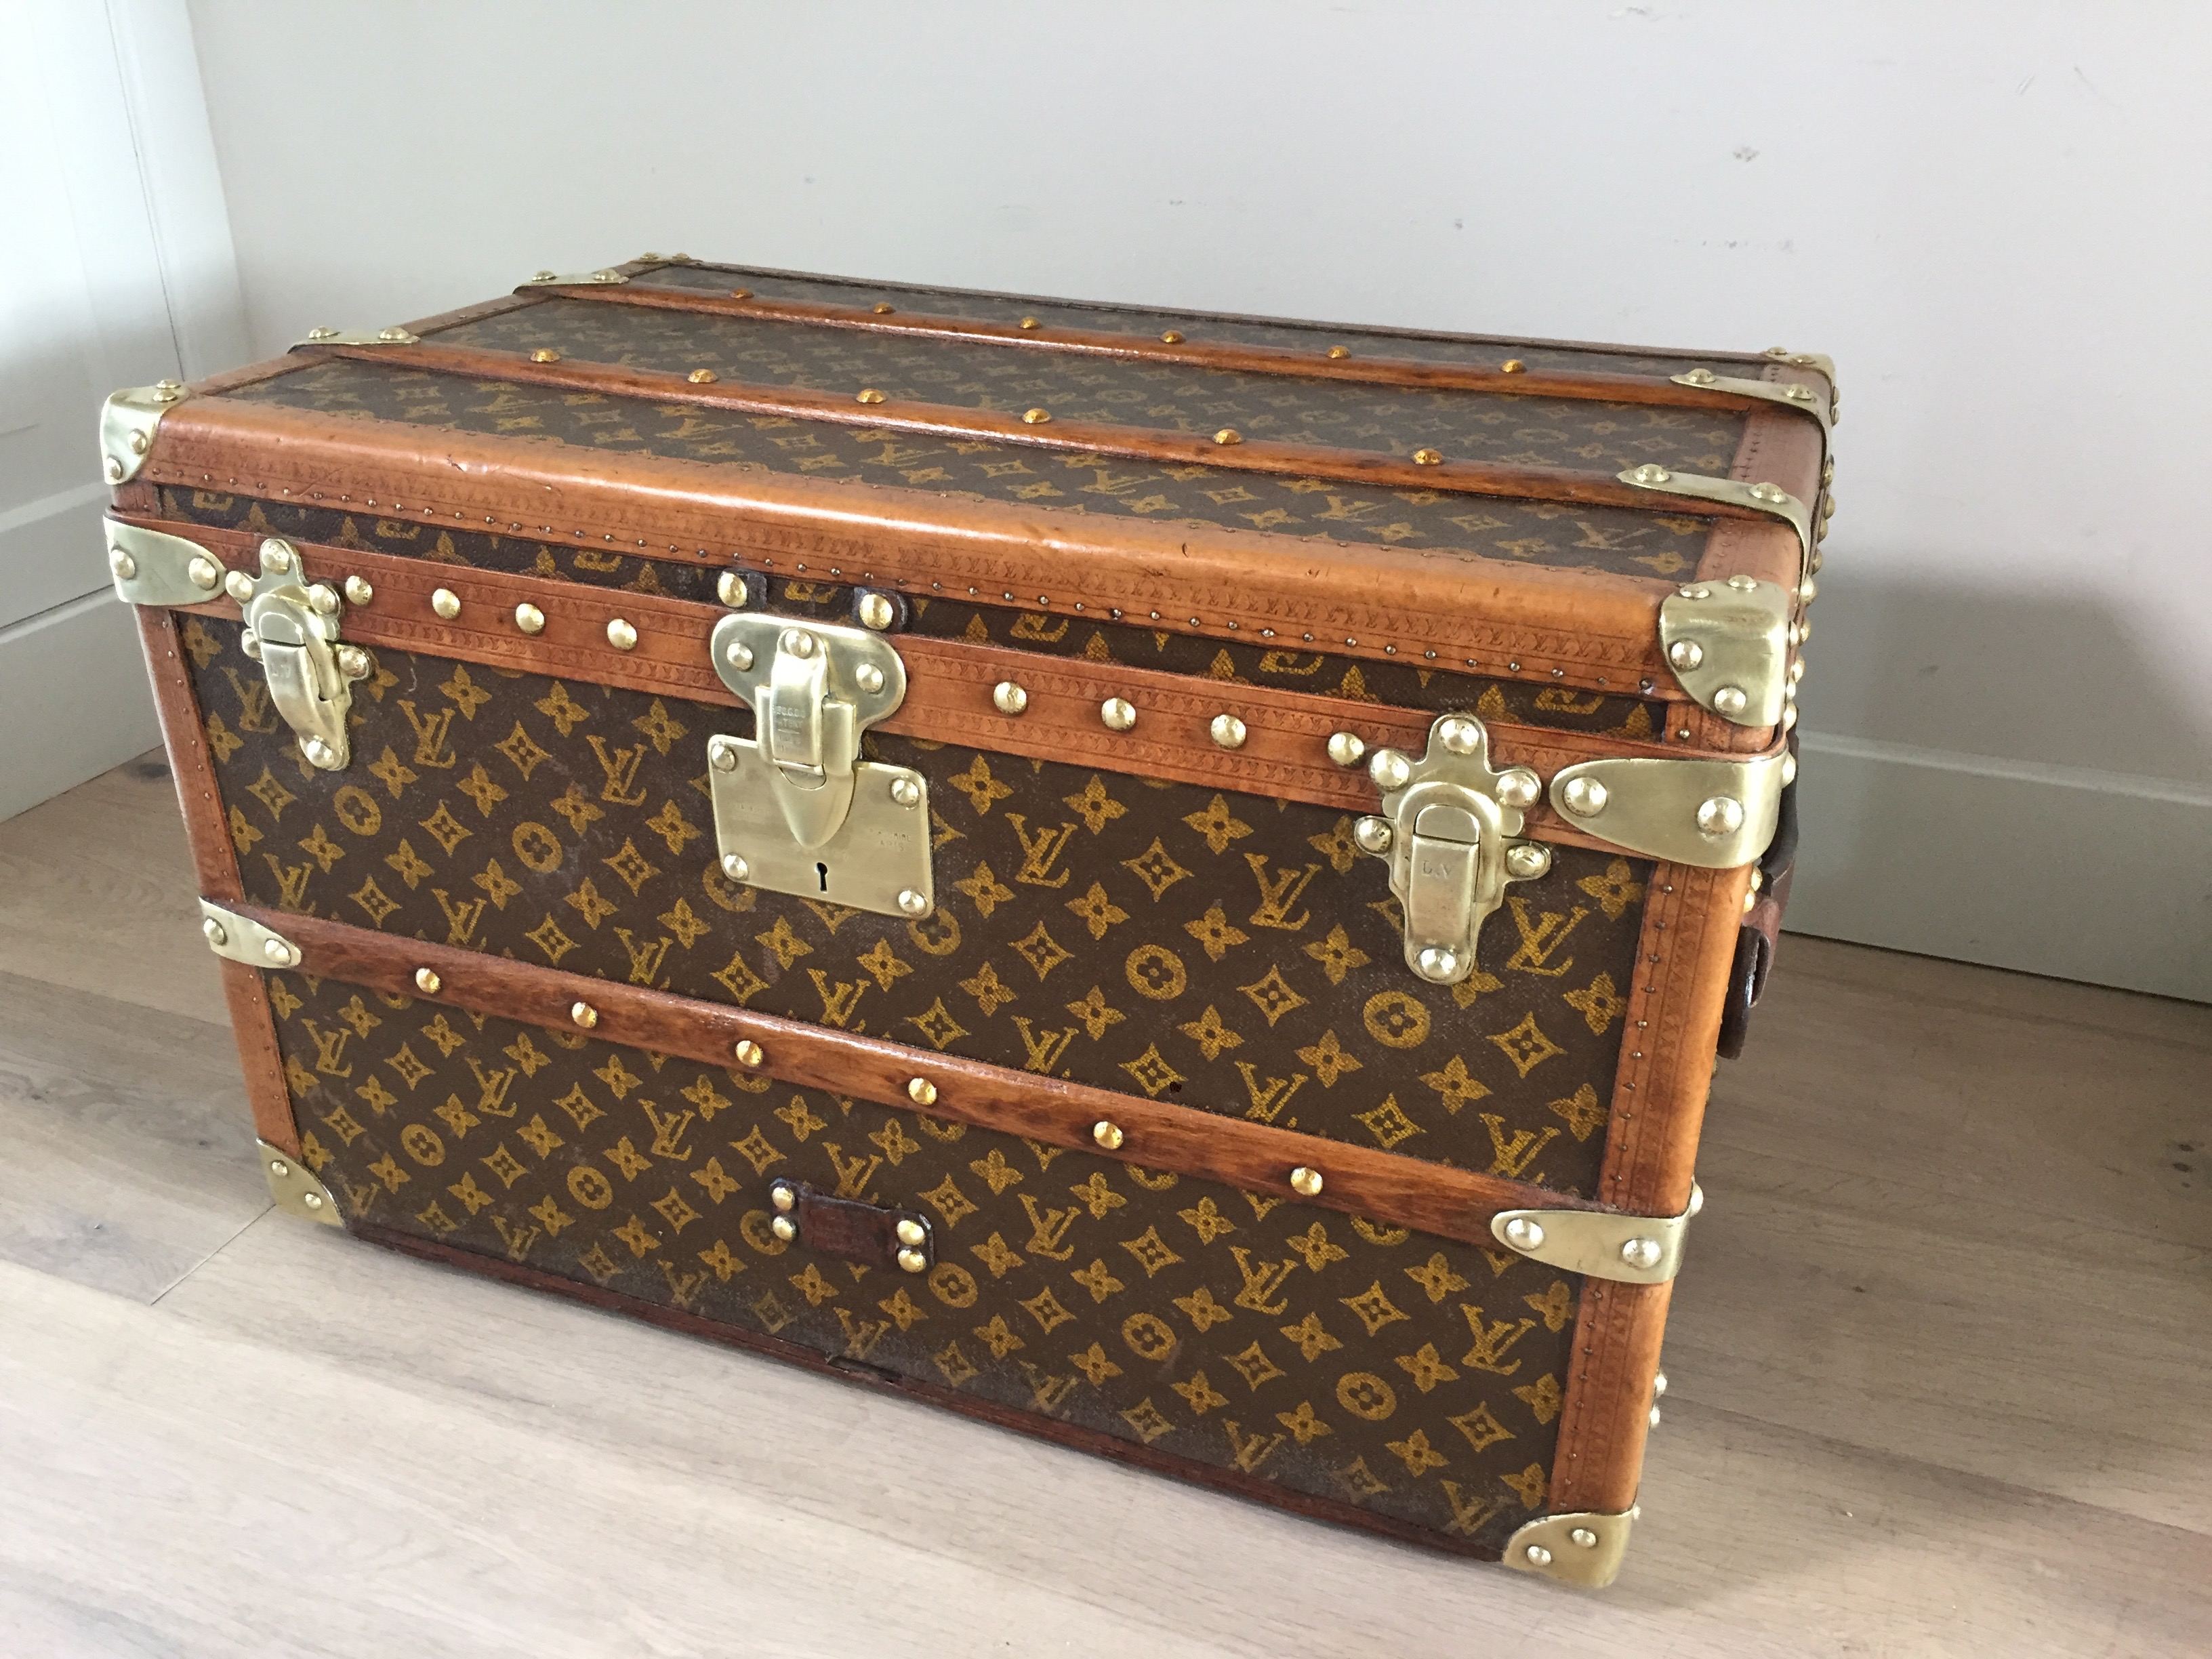 Antique louis vuitton coffee table trunk small size pinth vintage luggage Old trunks as coffee tables